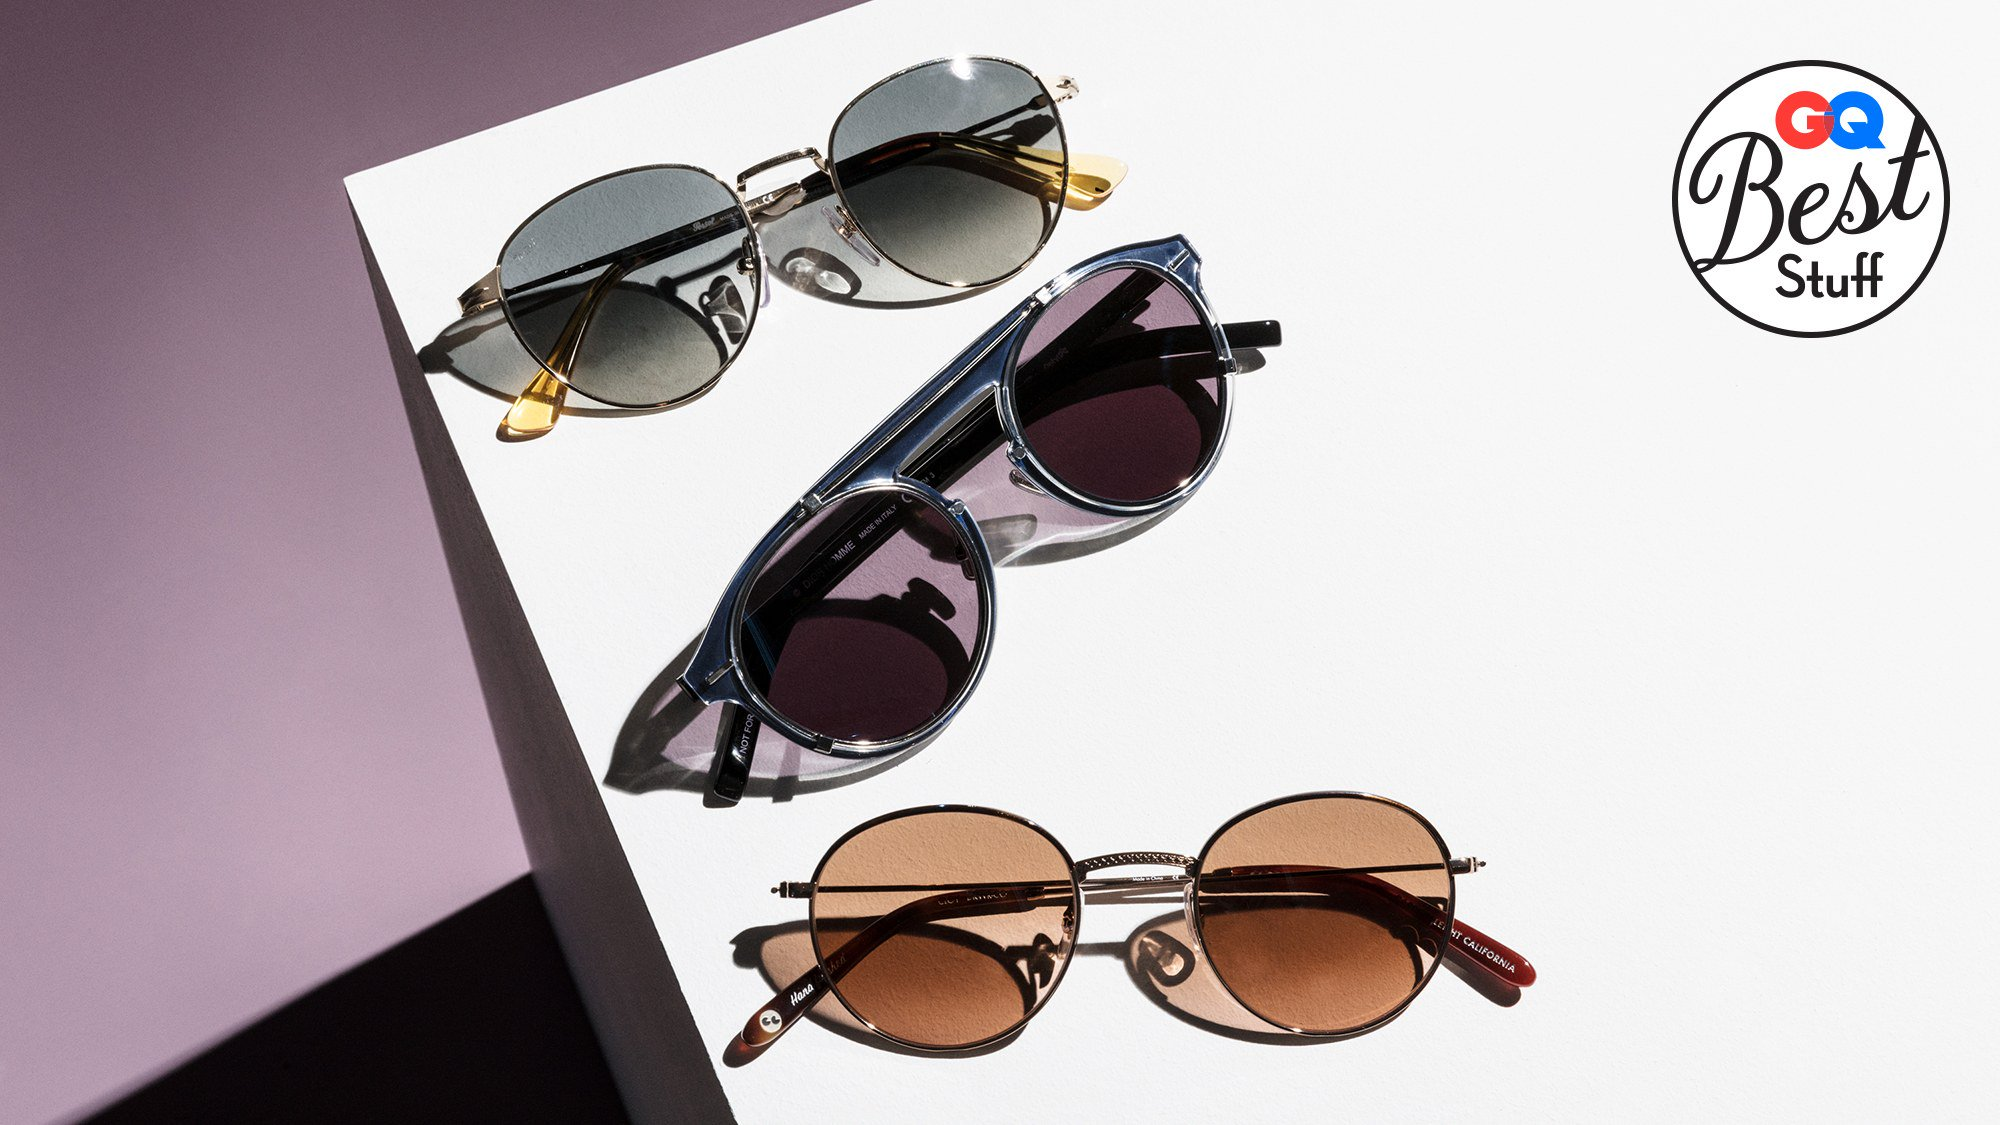 The best round sunglasses for your face (no matter what shape it is) https://t.co/G3bZGzVRgI https://t.co/q4cRVgzsVx